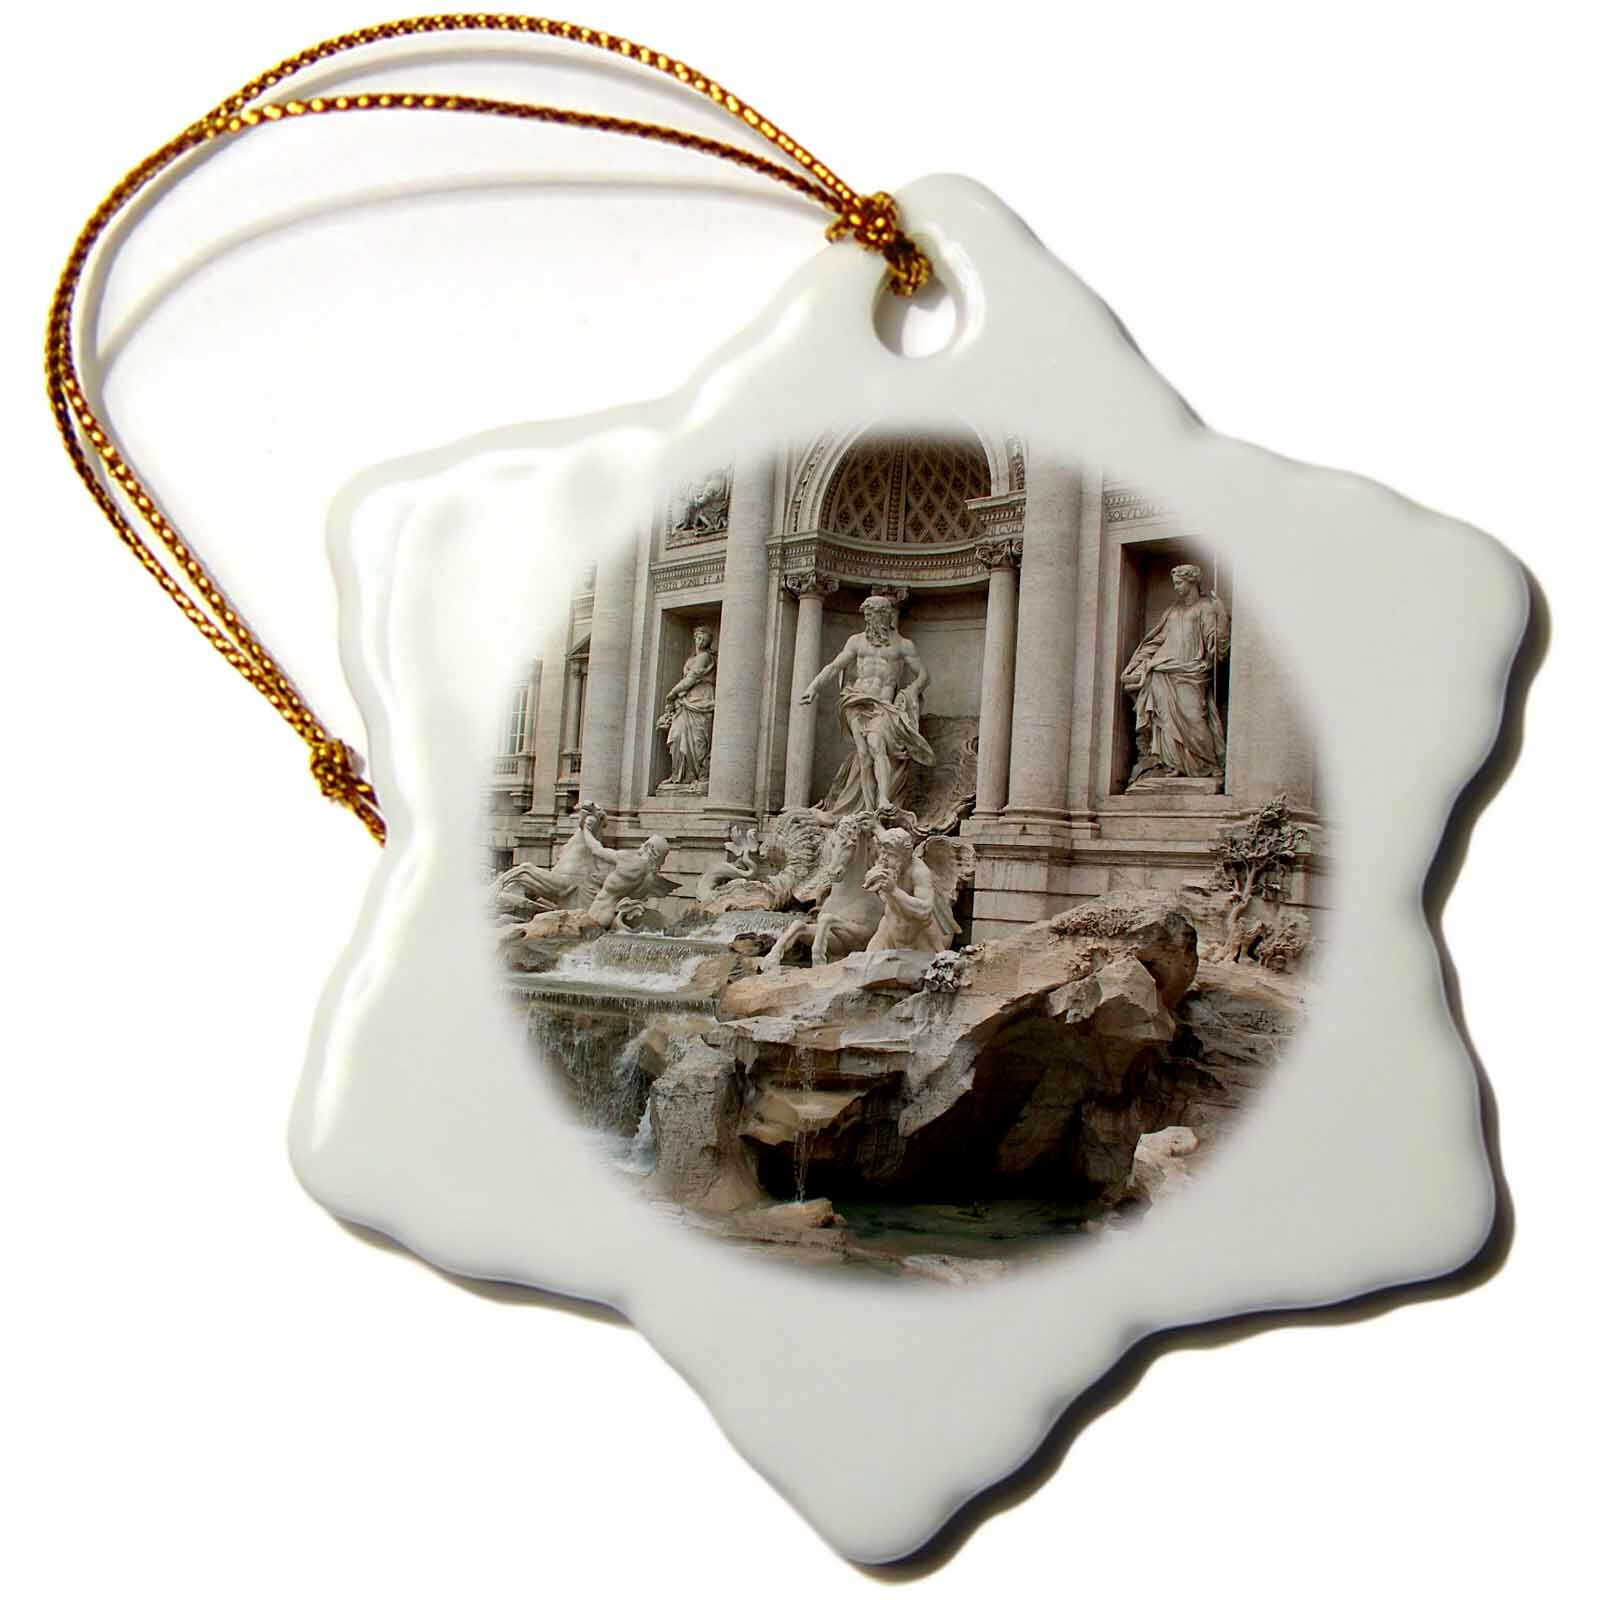 The Holiday Aisle Trevi Fountain In Rome Italy Holiday Shaped Ornament Wayfair